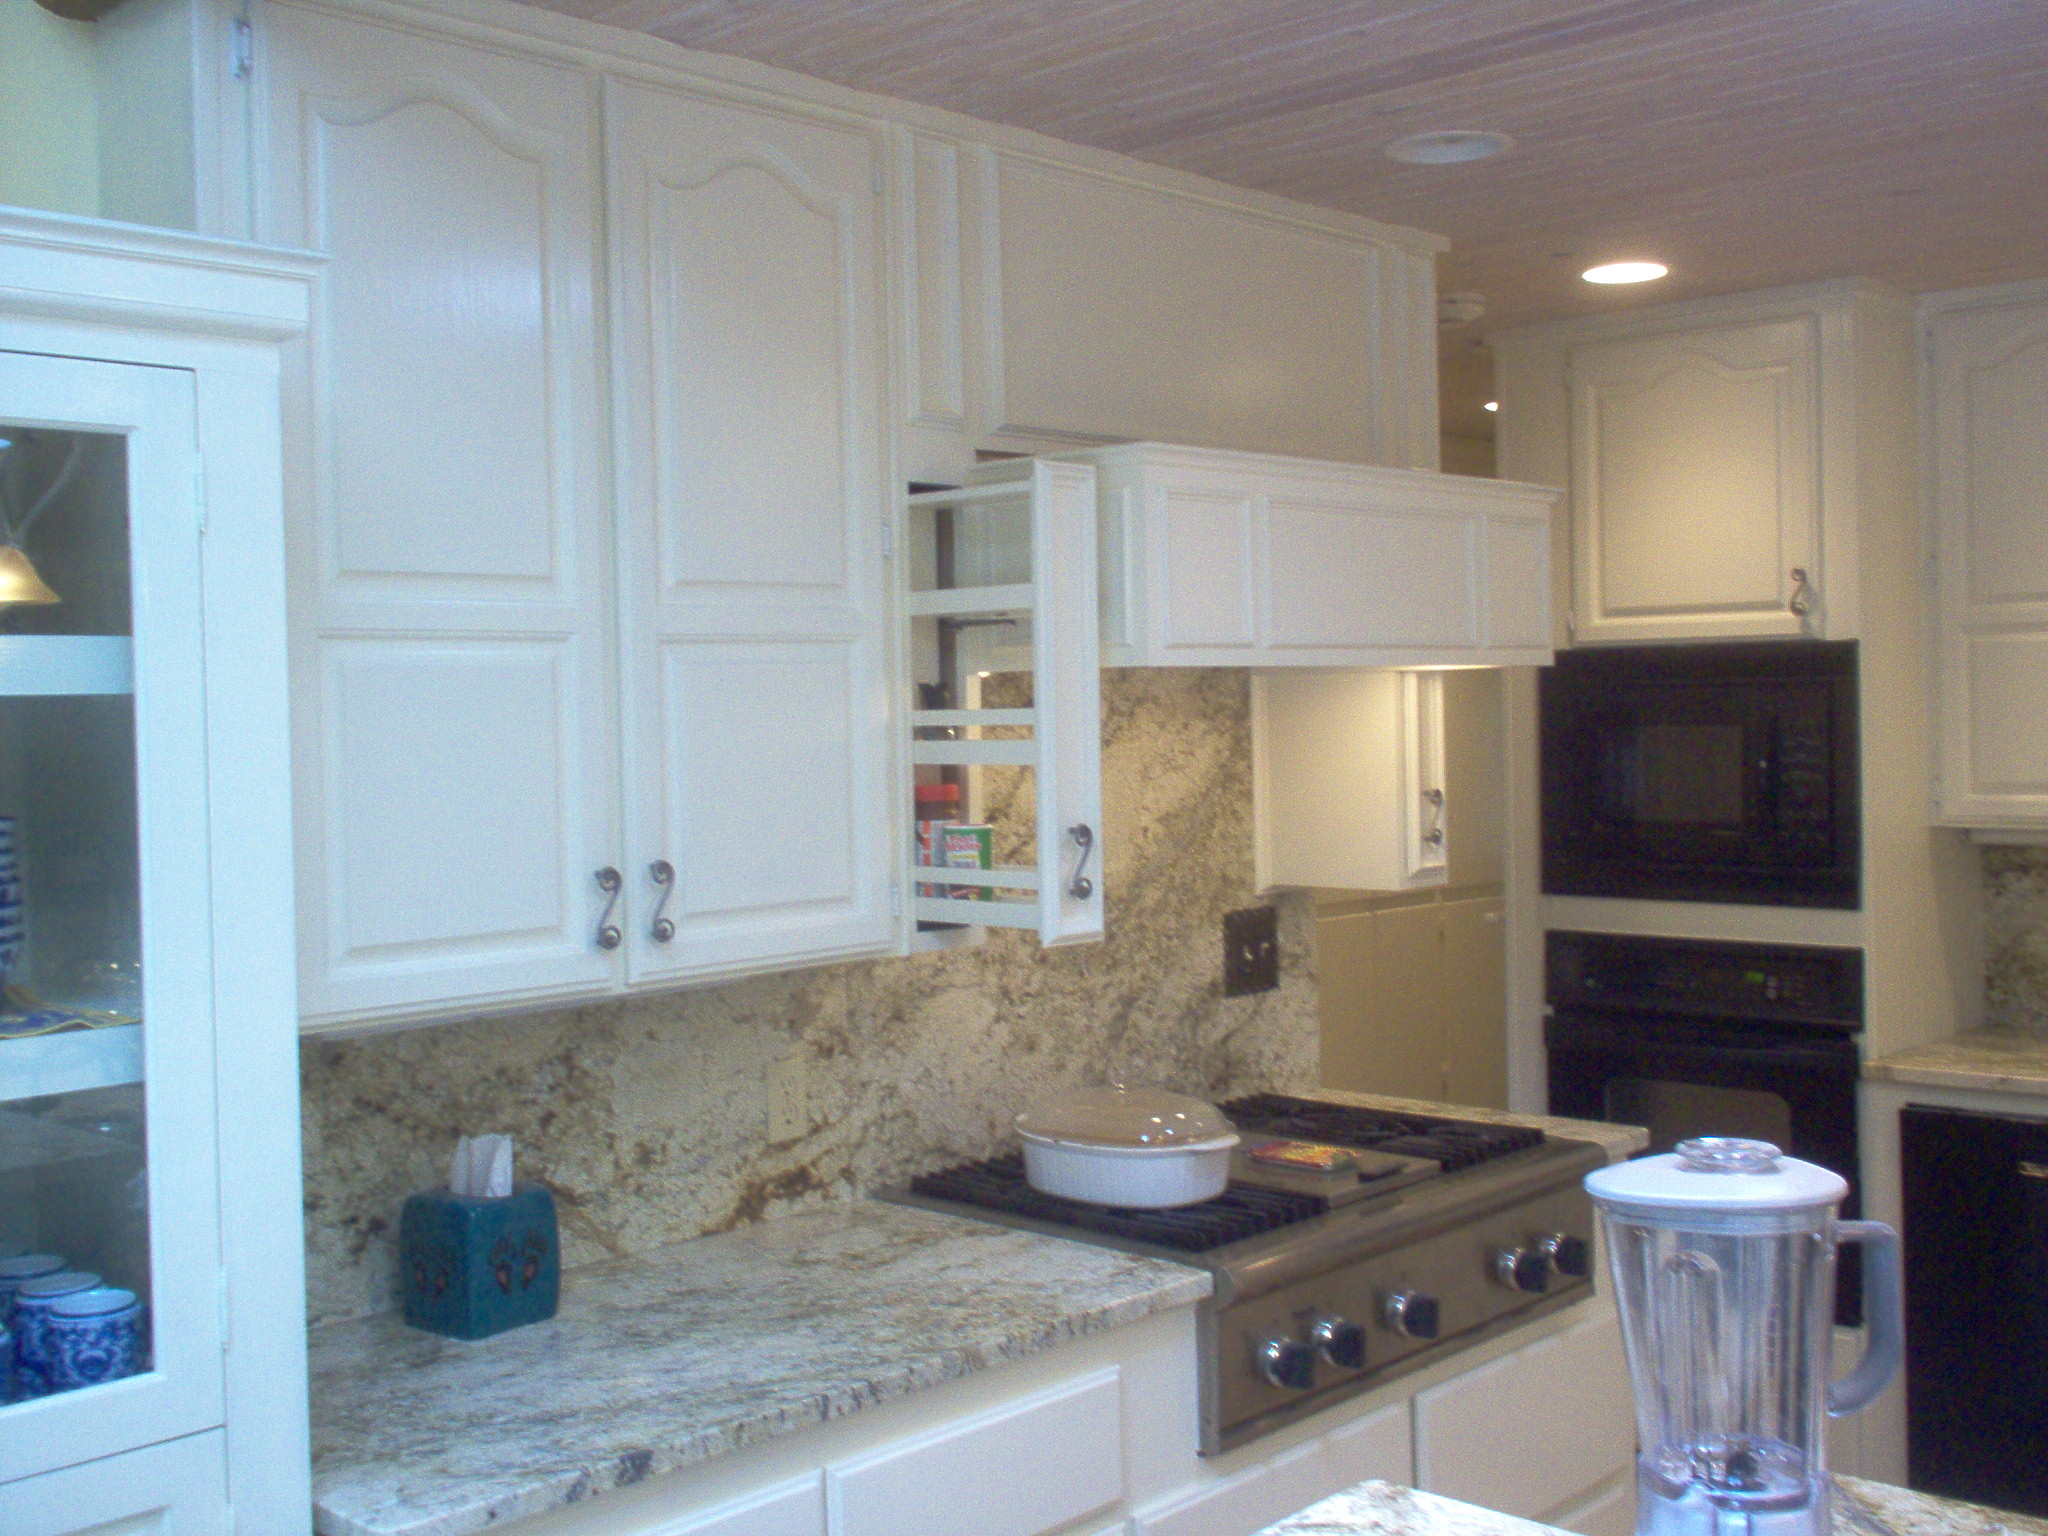 Woller Painting Remodeling Tulsa Painters Remodeling Company